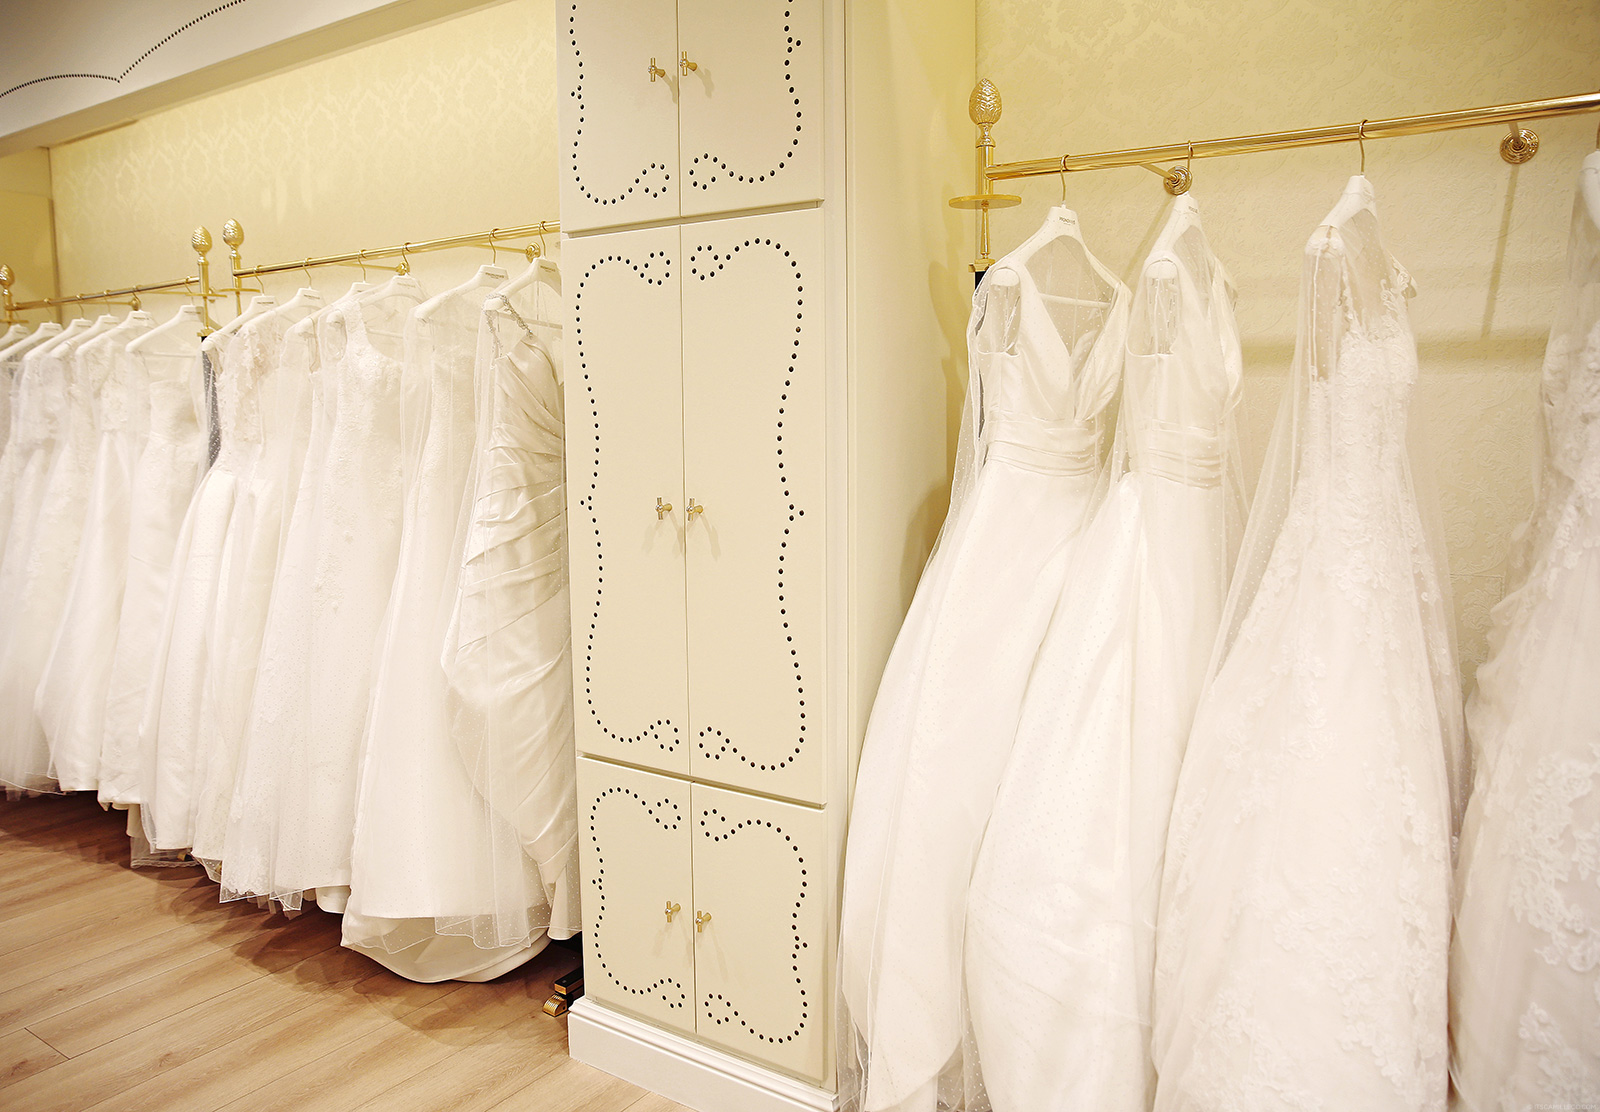 Wedding Dress Hangers 58 Lovely A Visit To Pronovias